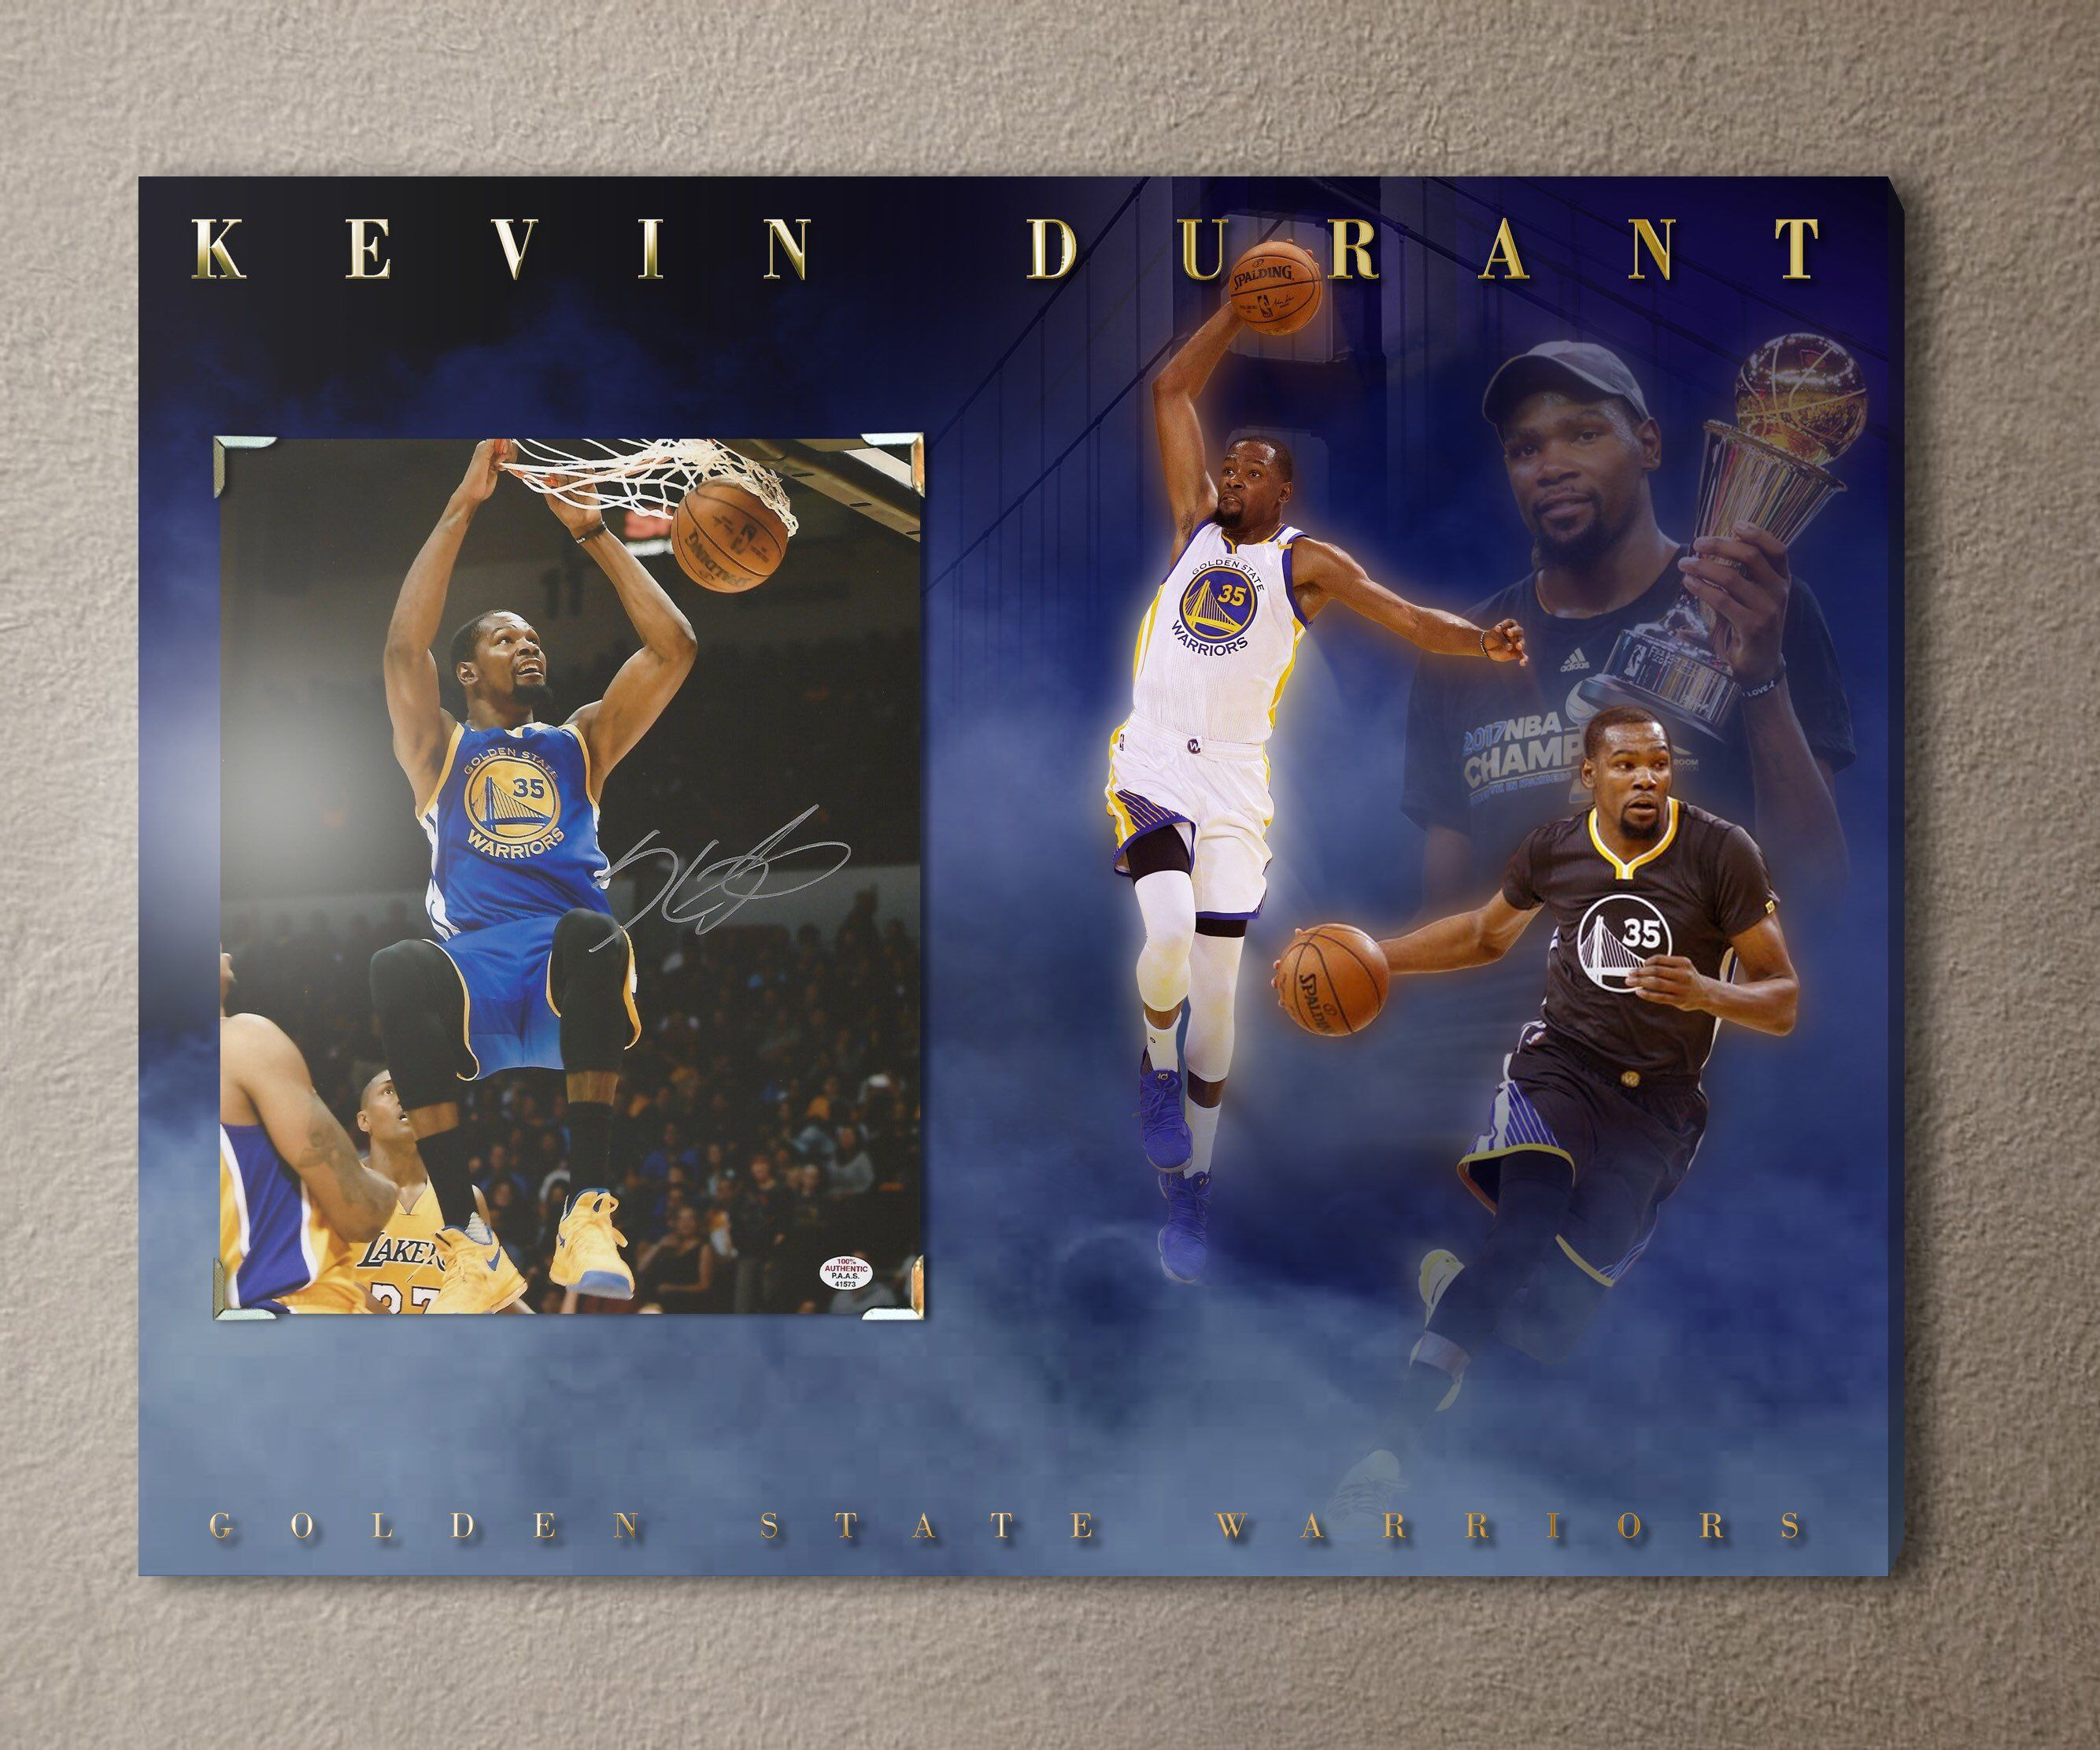 637d64026e17 Excited to share the latest addition to my  etsy shop  Golden State  Warriors superstar Kevin Durant signed autographed 8x10 photo (w  COA) on  an amazing ...